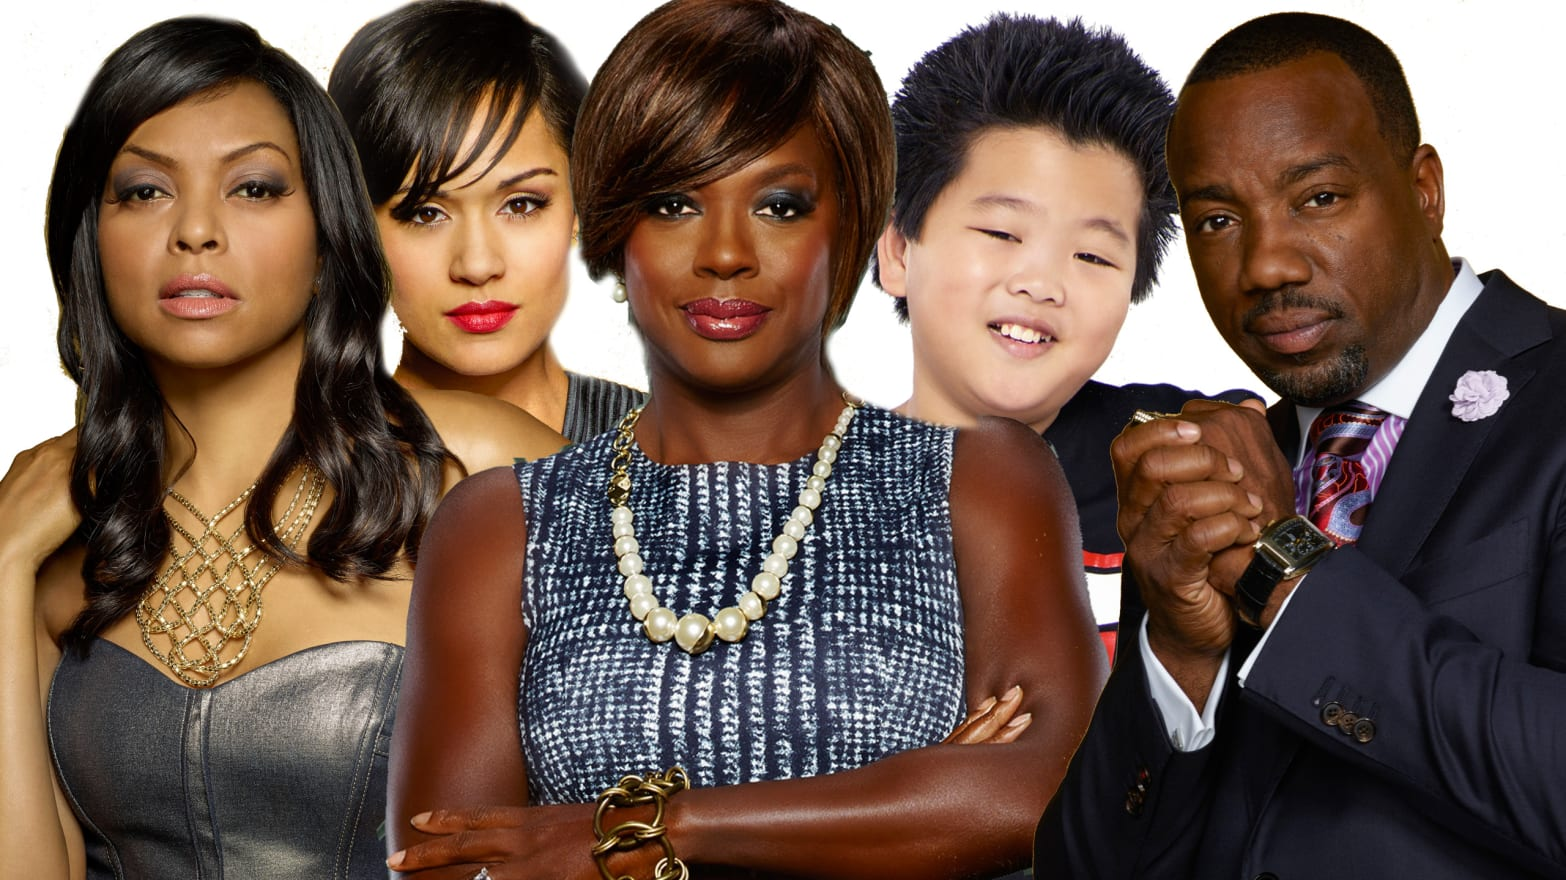 Hollywood's Still Racist: Why the Deadline 'Ethnic Casting' Piece Is Dangerous